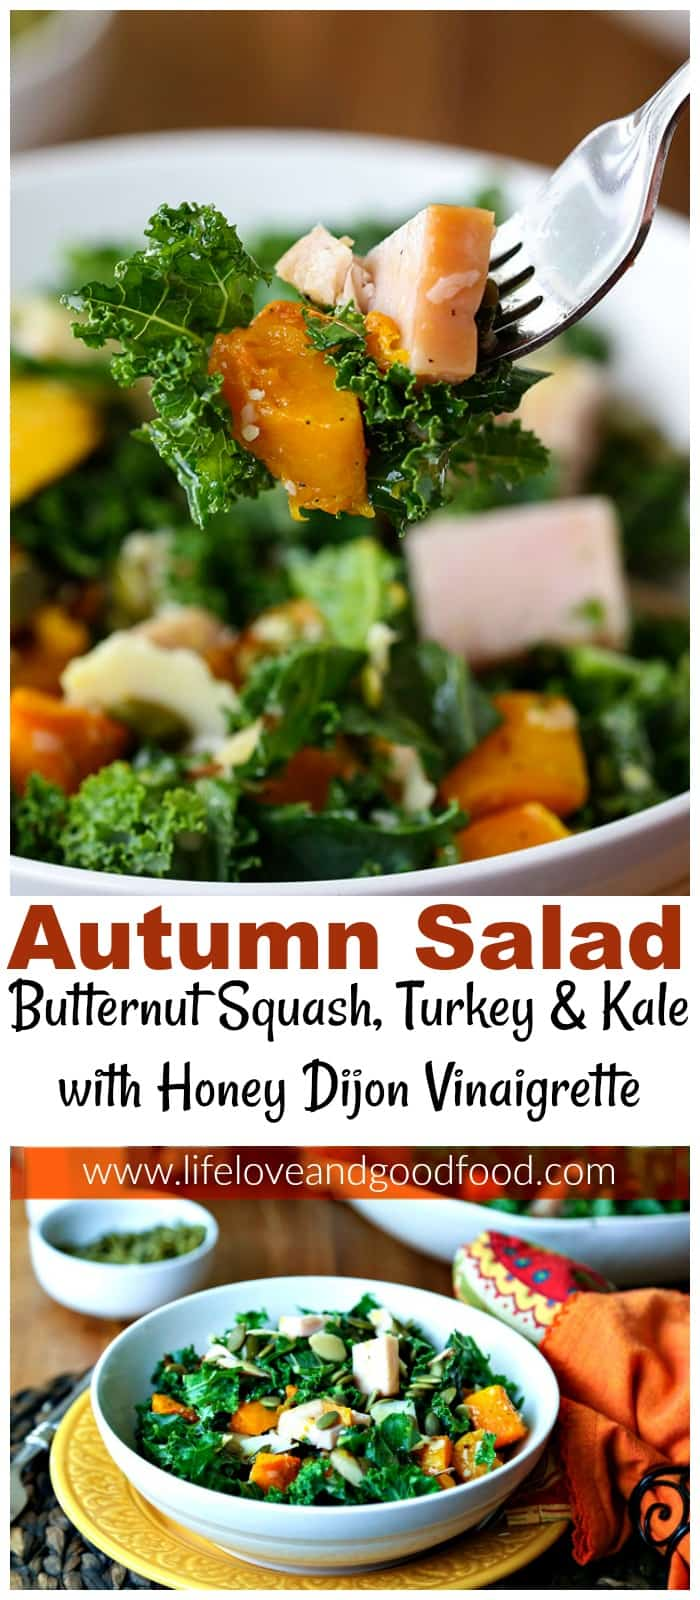 Welcome Autumn with this healthy kale salad with butternut squash and turkey tossed with a simple honey Dijon vinaigrette and garnished with pumpkin seeds. #salad #kalesalad